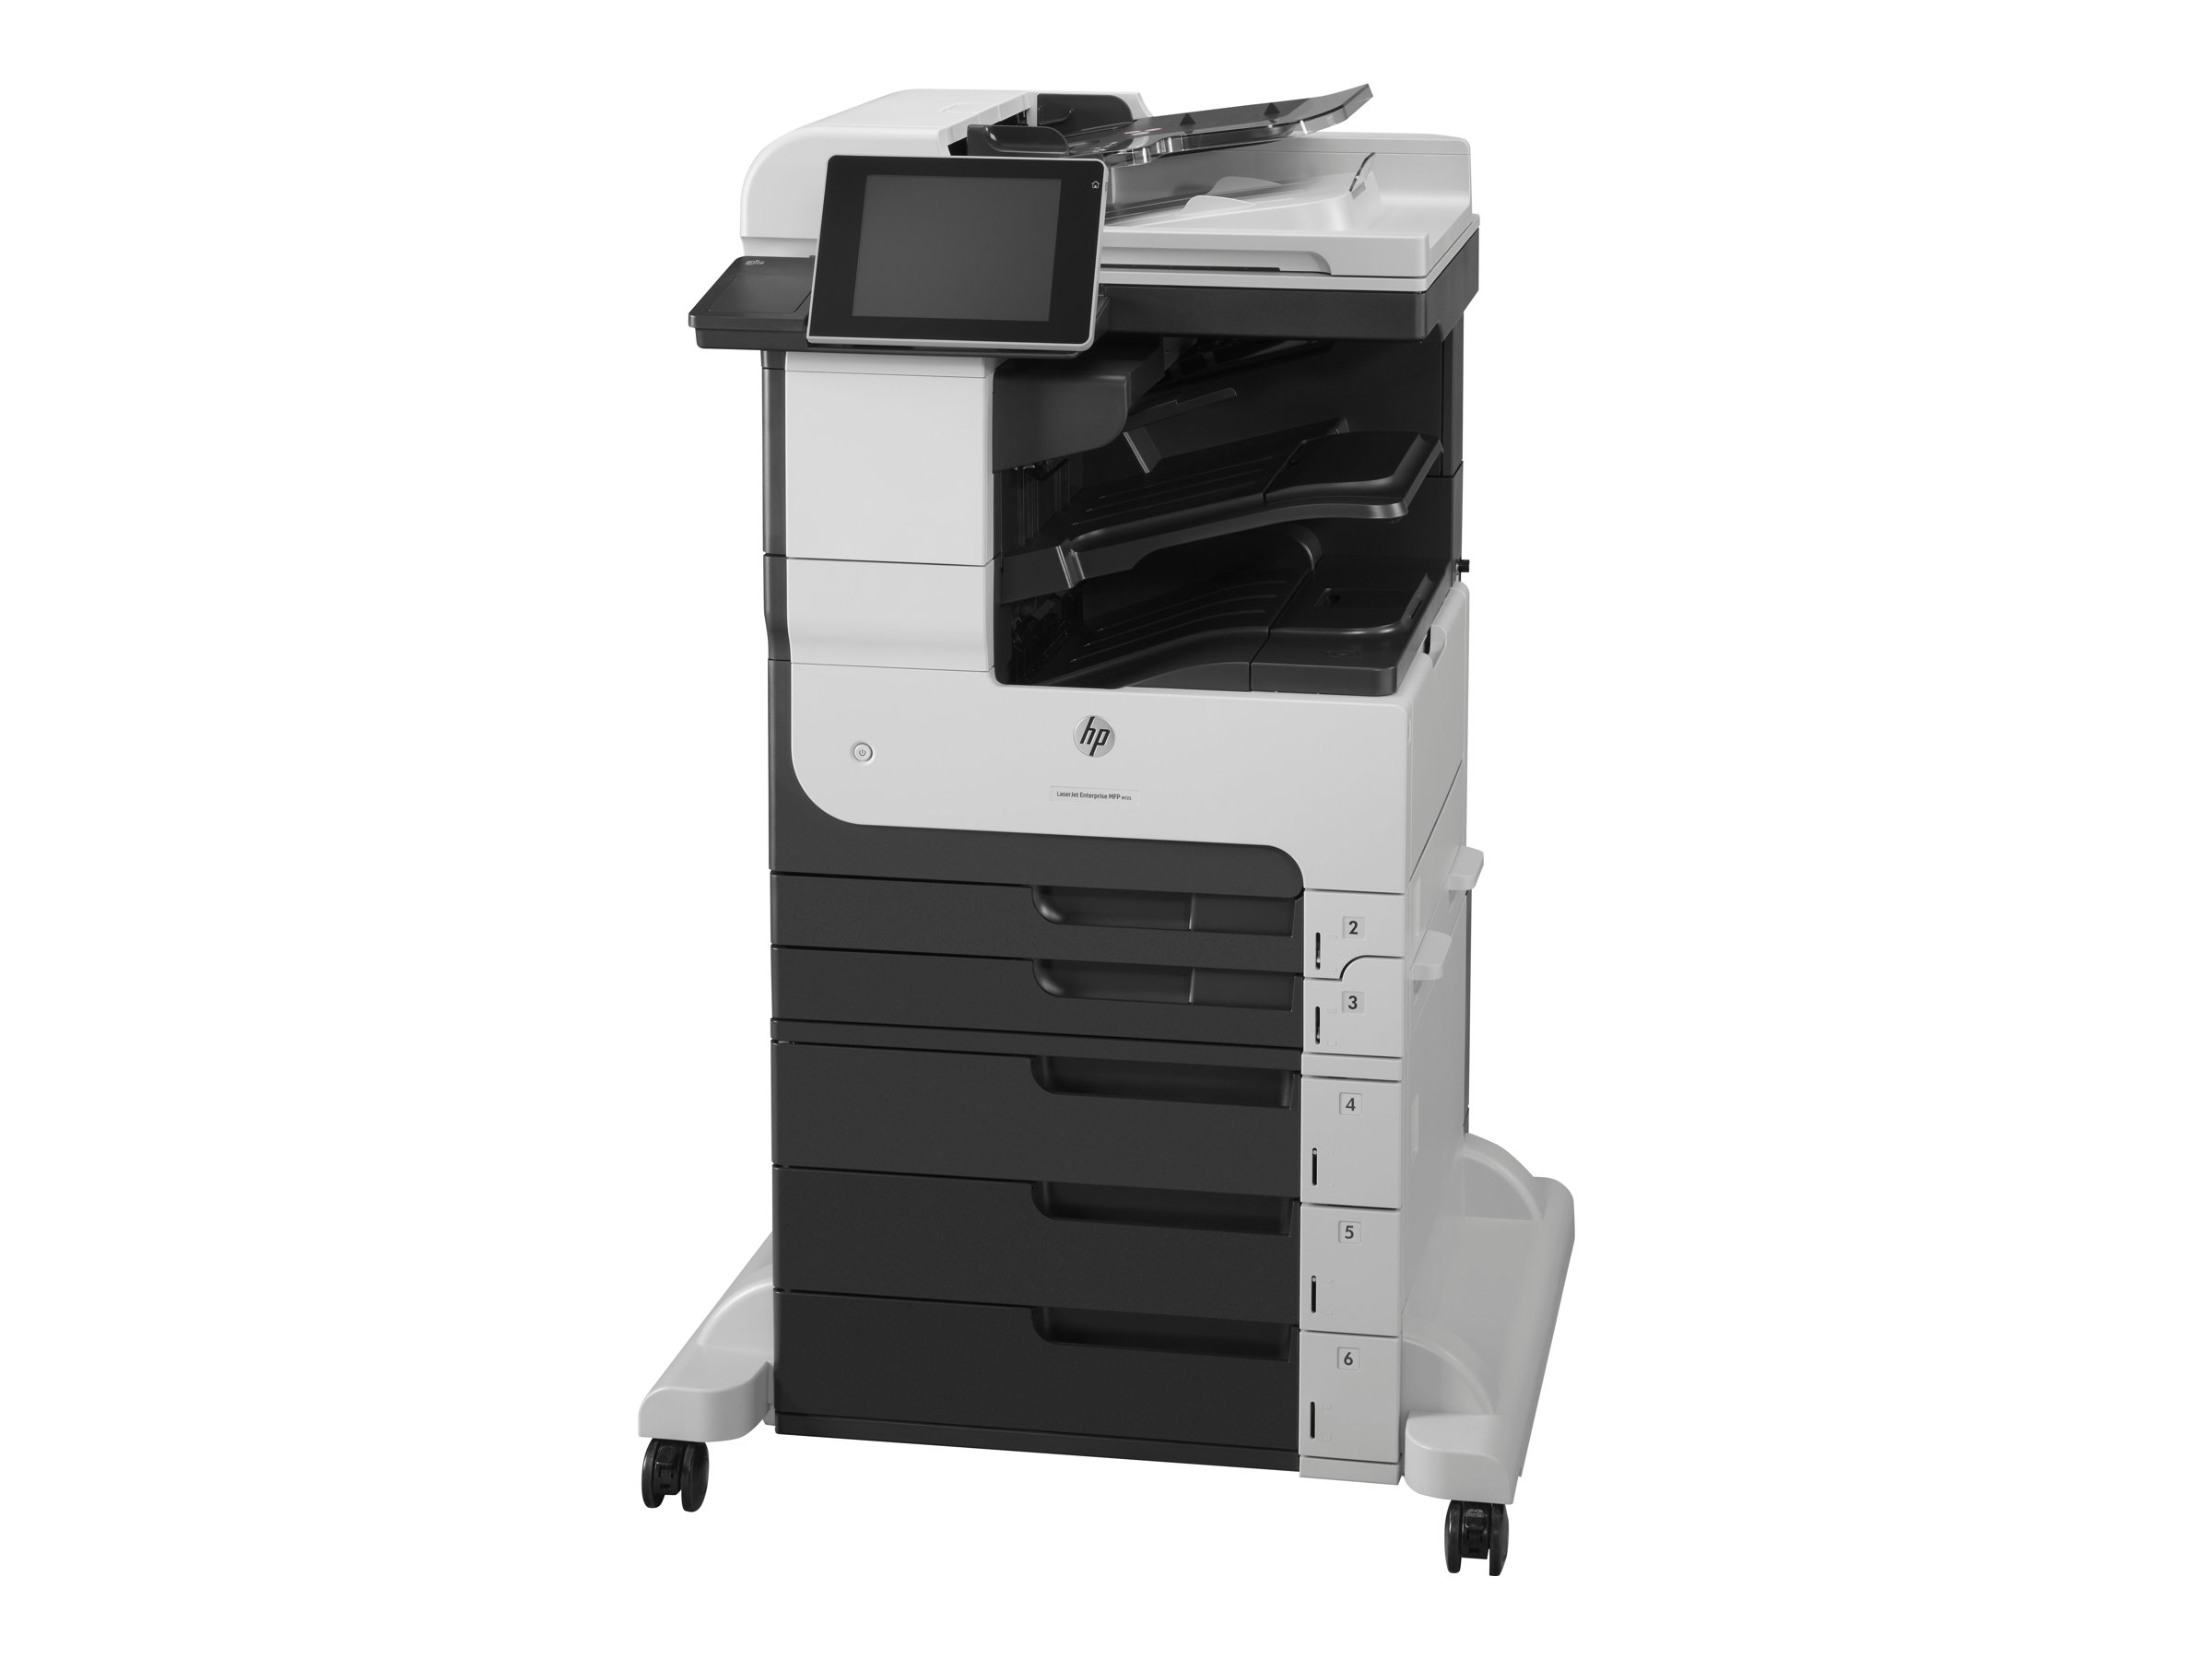 HP LaserJet Enterprise MFP M725z - Multifunktionsdrucker - s/w - Laser - A3 (297 x 420 mm) (Original) - A3/Ledger (Medien)